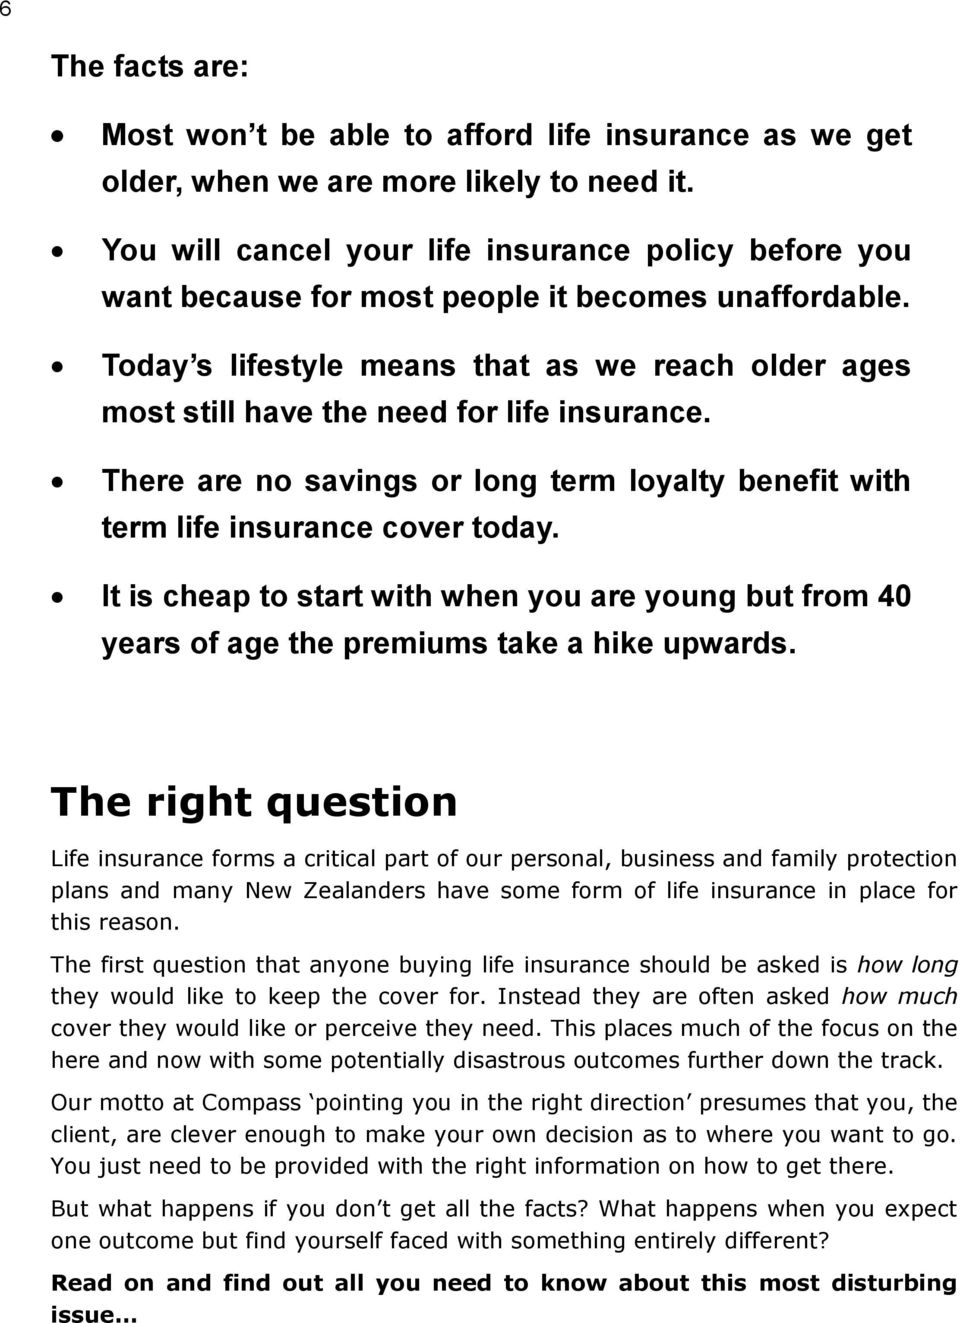 Today s lifestyle means that as we reach older ages most still have the need for life insurance. There are no savings or long term loyalty benefit with term life insurance cover today.